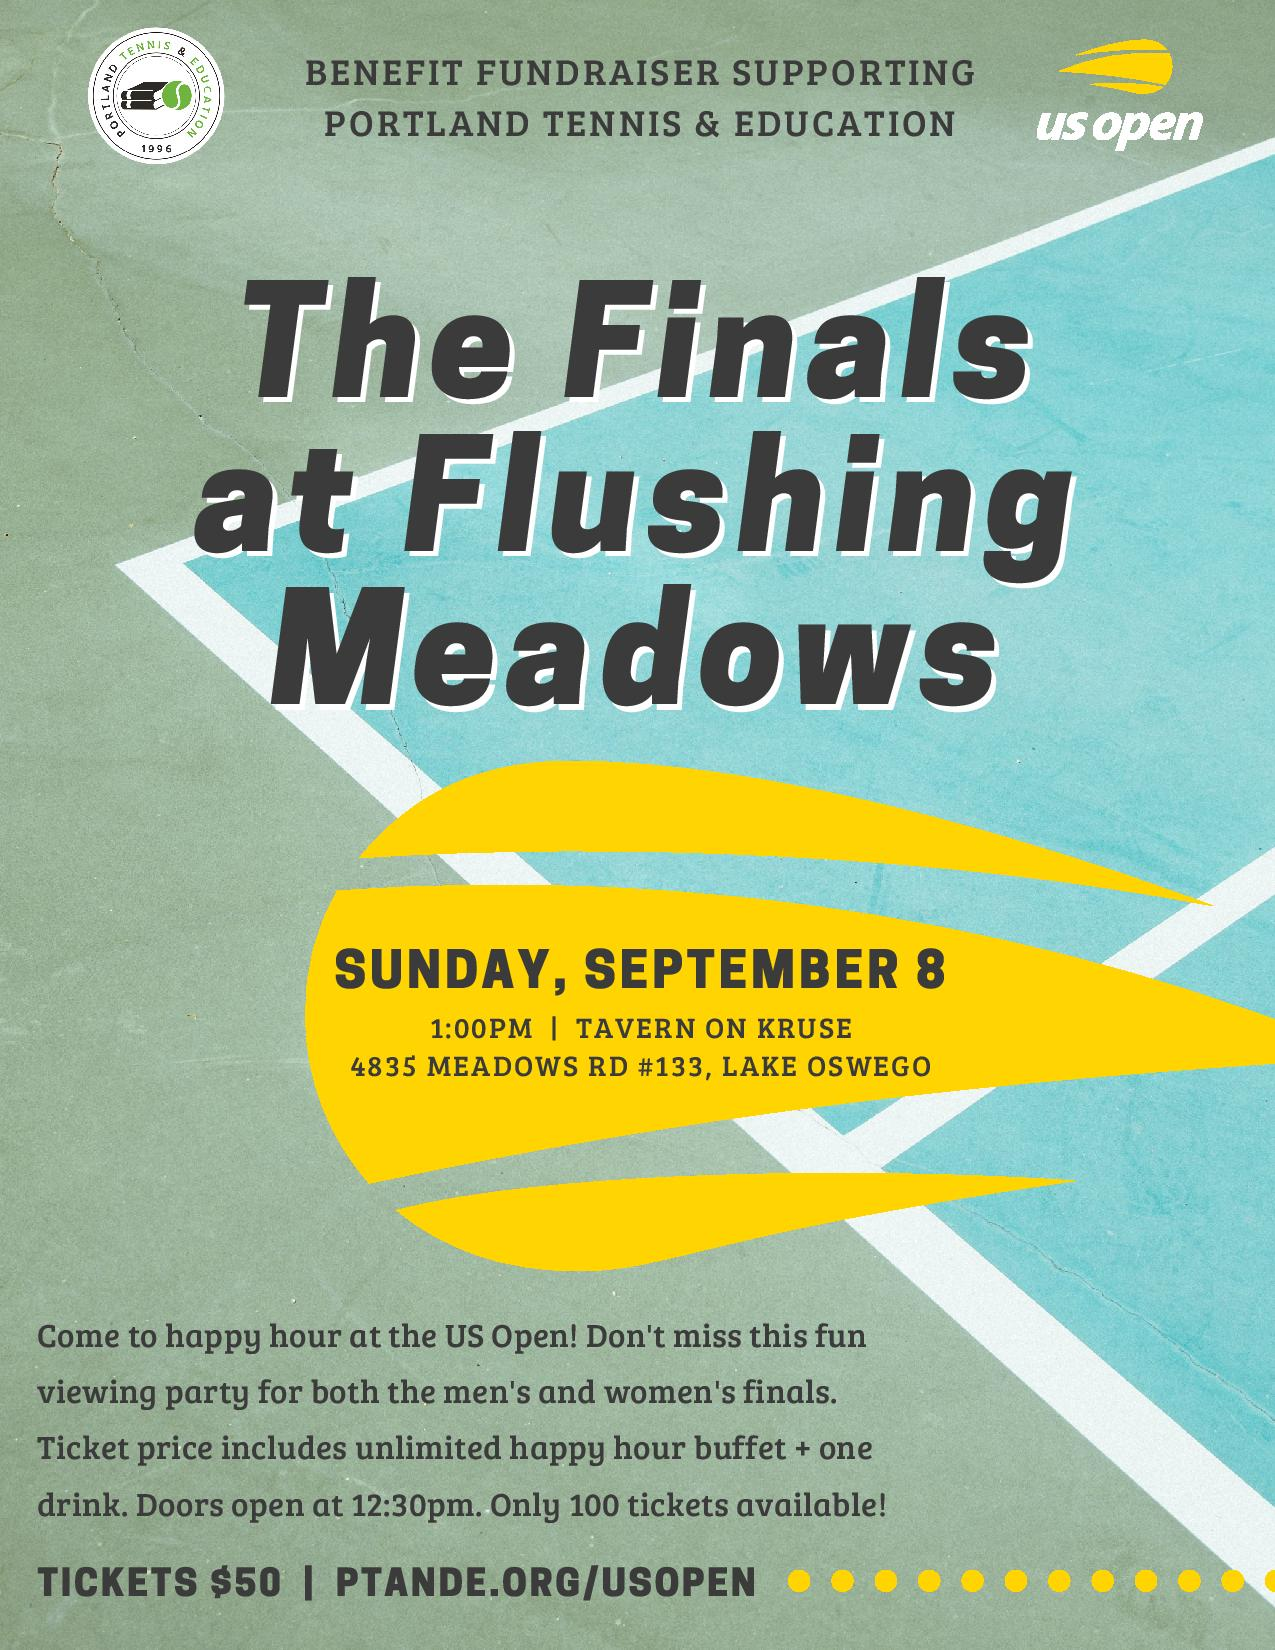 The Finals @ Flushing Meadows (3) (1)-page-001.jpg